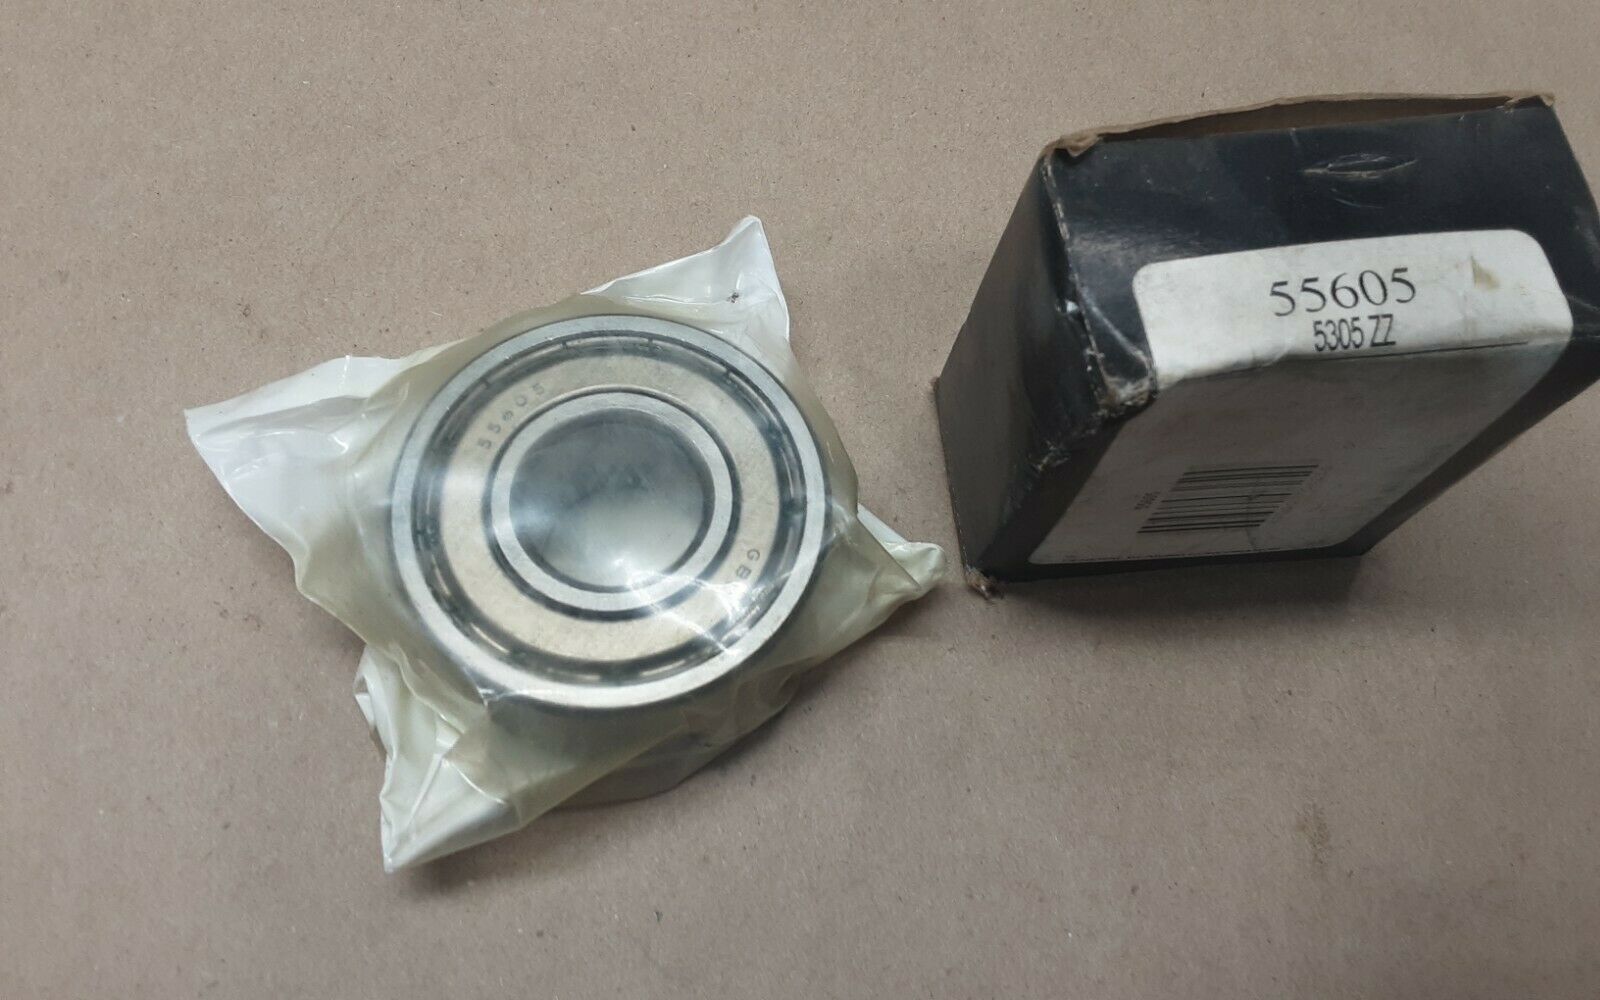 NEW General Bearing 5305-ZZ 55605 Sealed Double Row Ball BEARING